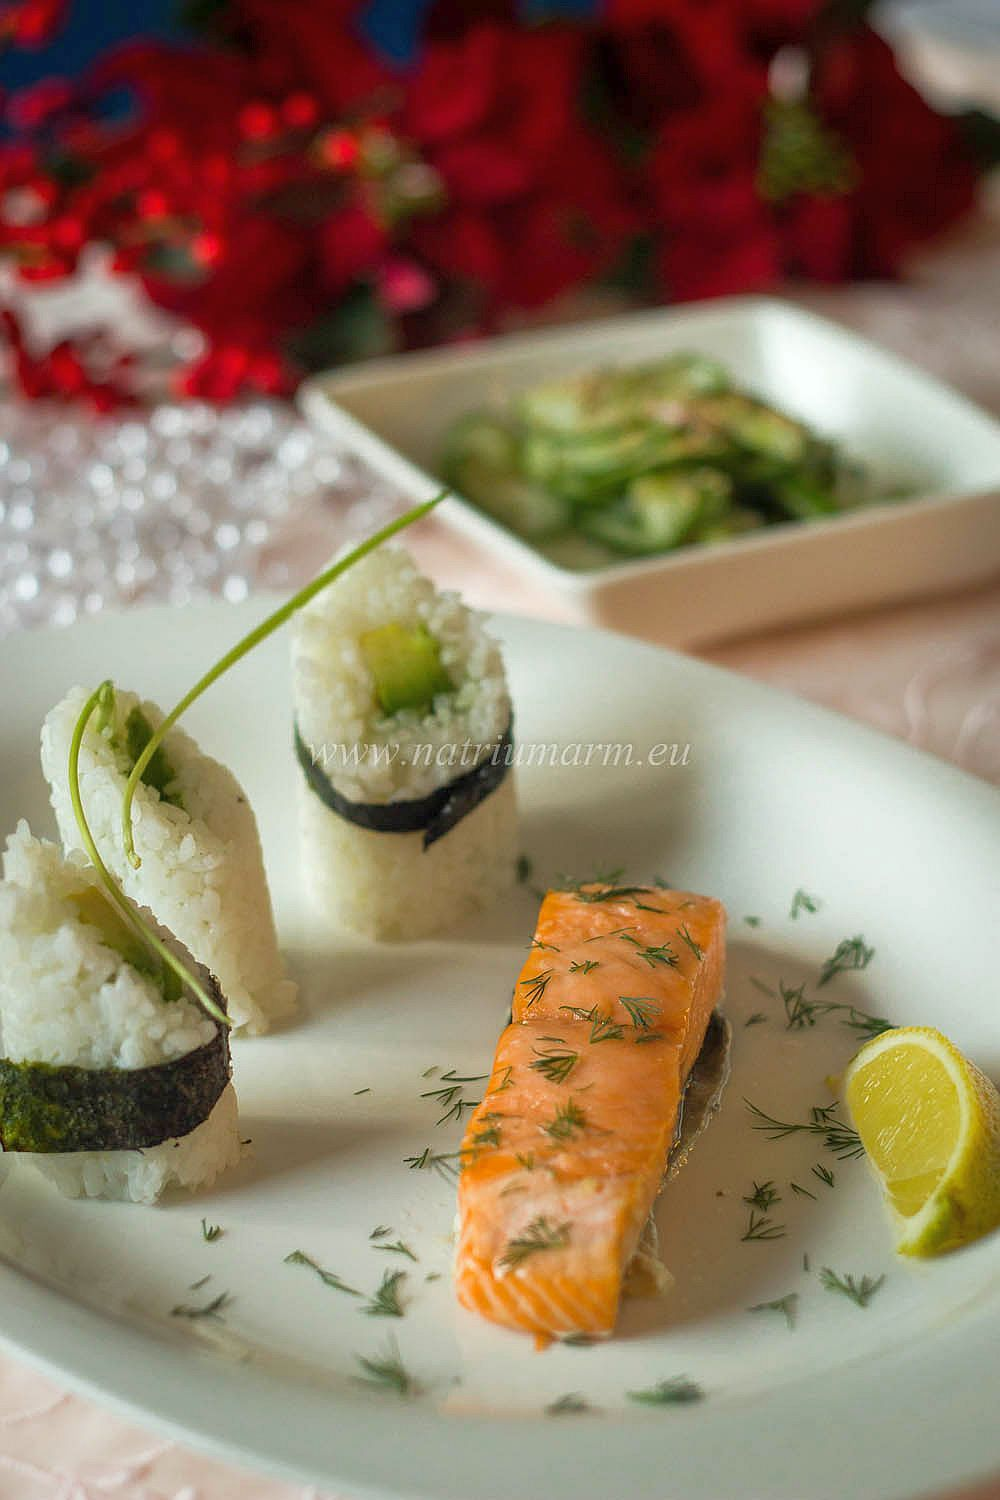 Part III of my kidney friendly christmas menu: Home smoked salmon and rice with avocado and chives (in Dutch bit with translator)